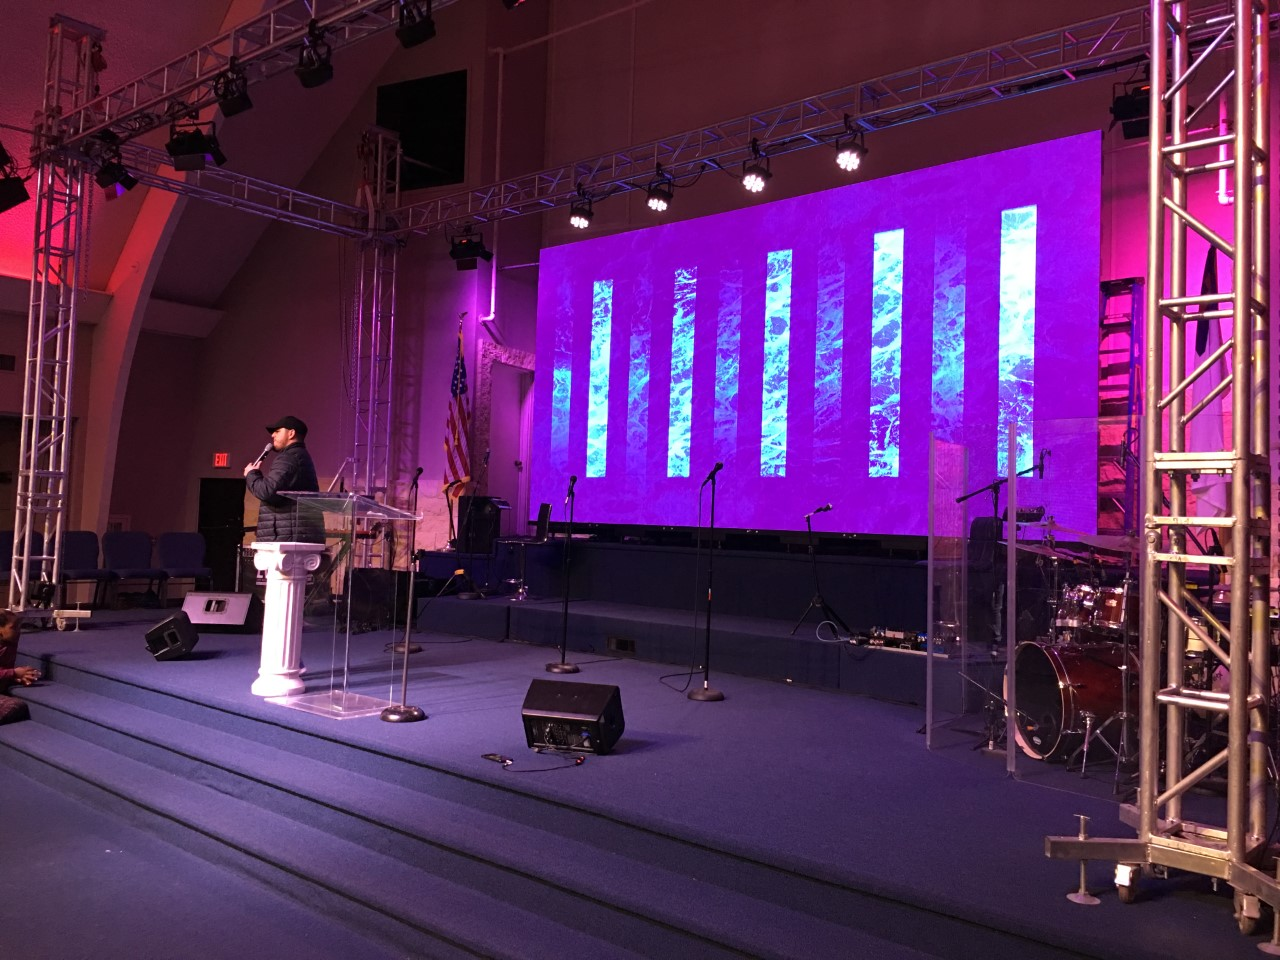 HOW-TO-CHOOSE-A-SUITABLE-LED-SCREEN-FOR-A-CHURCH